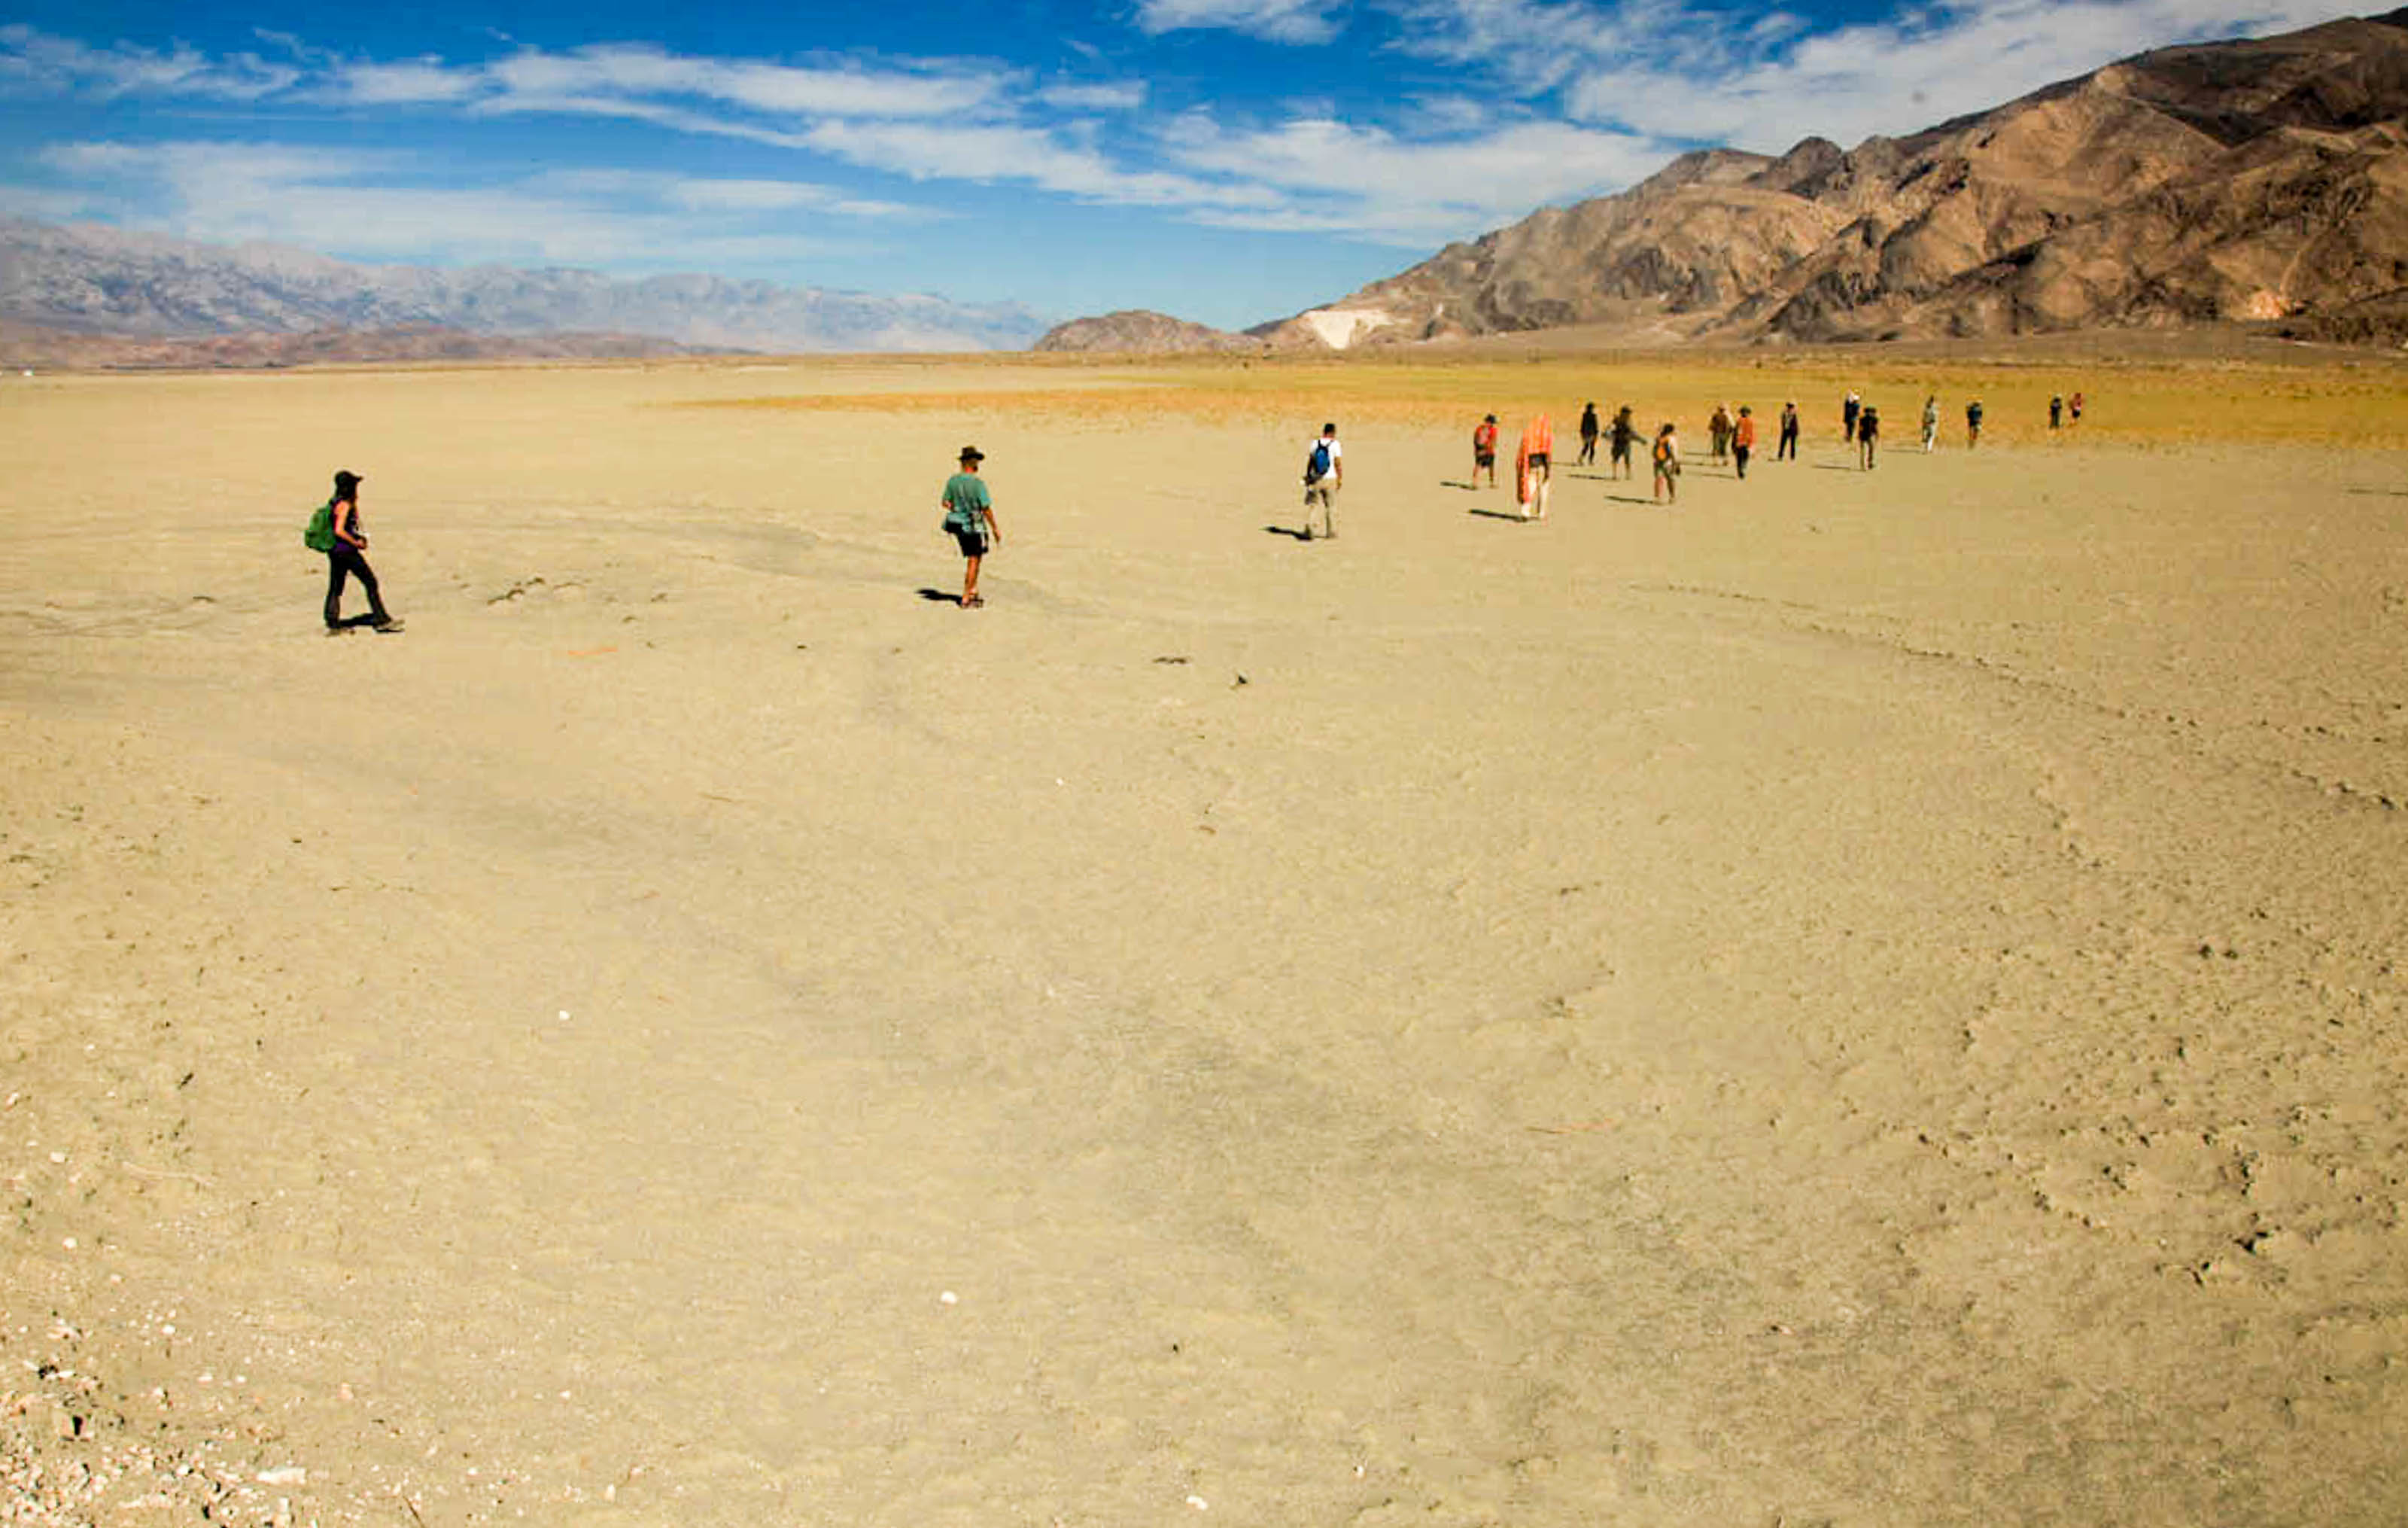 Walking Water pilgrims walking across a dry lake bed